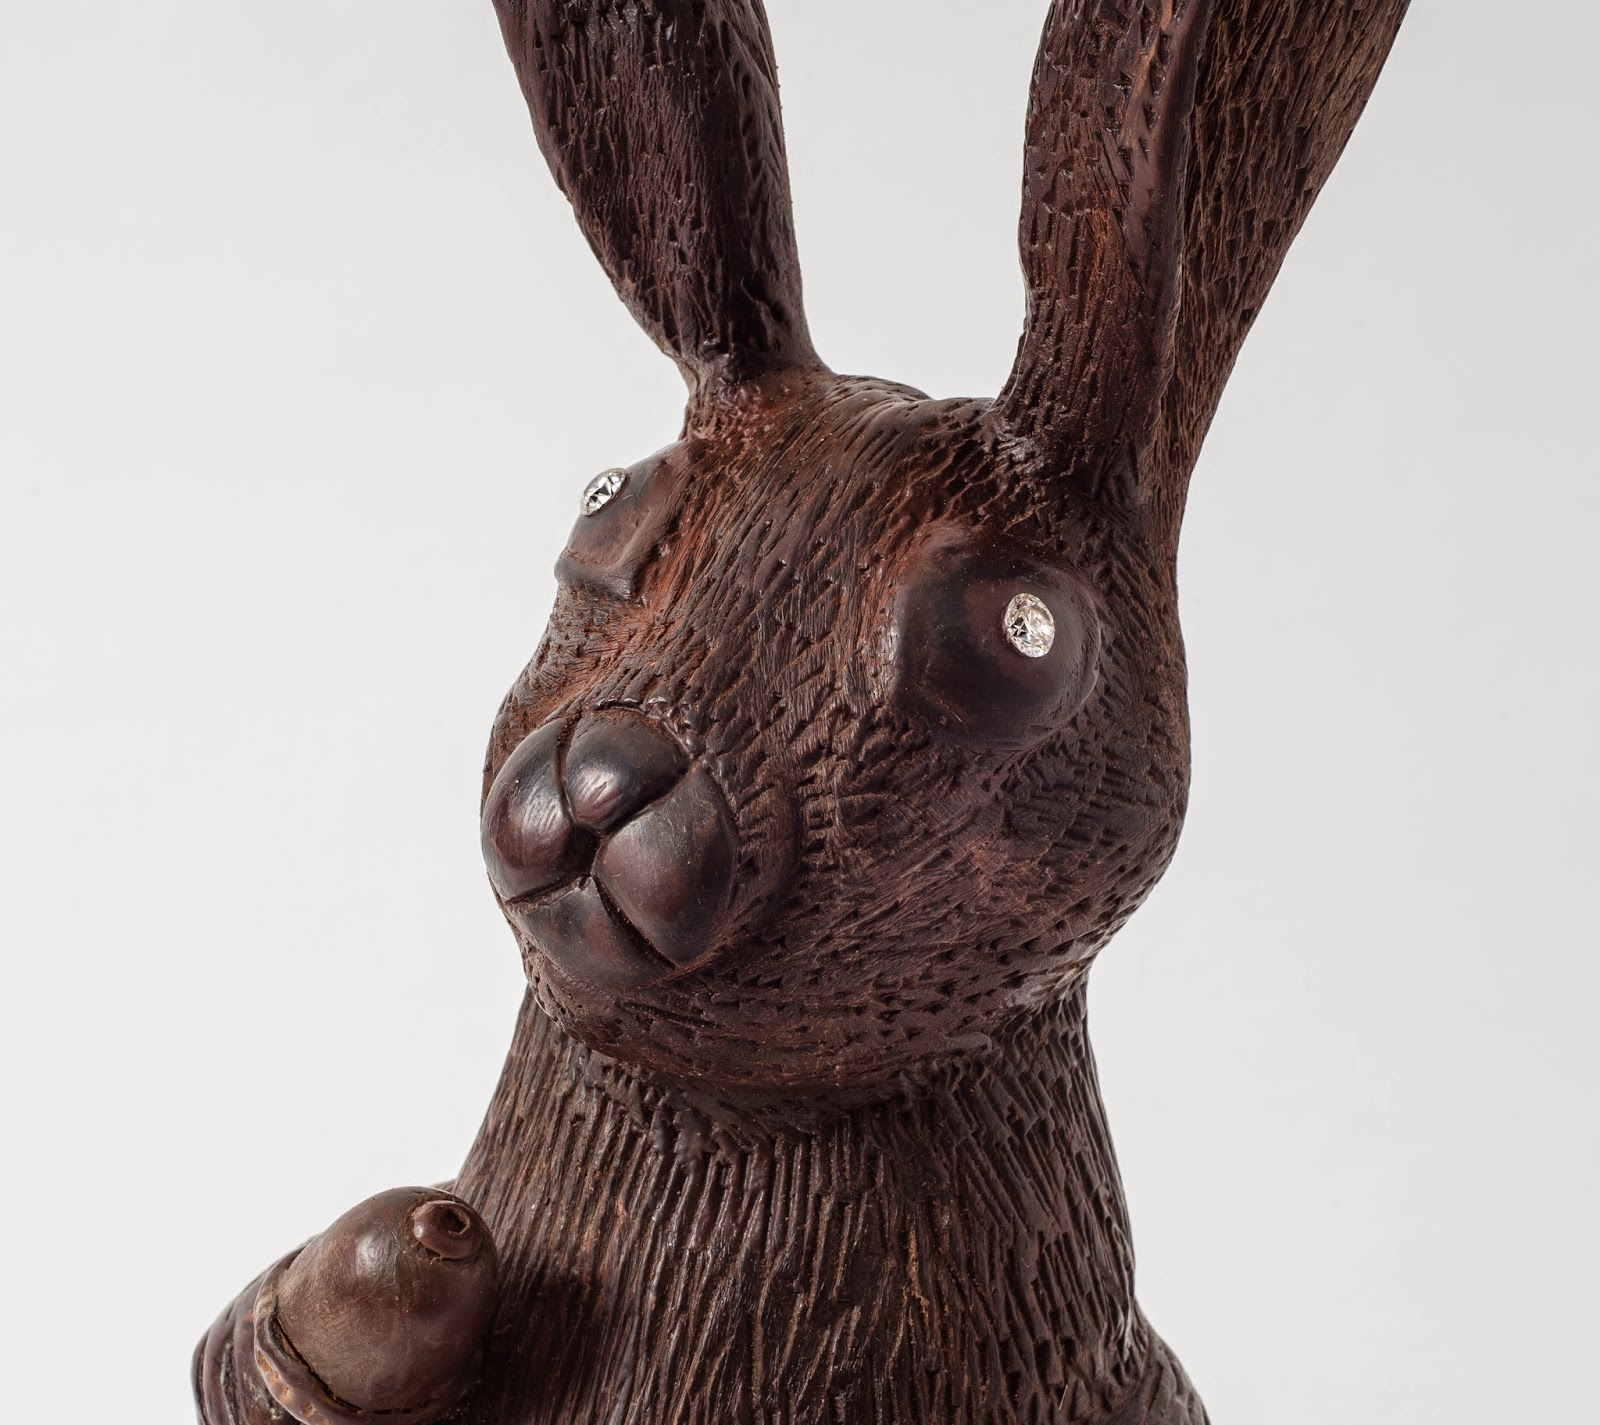 Chocolate Easter Bunny 2